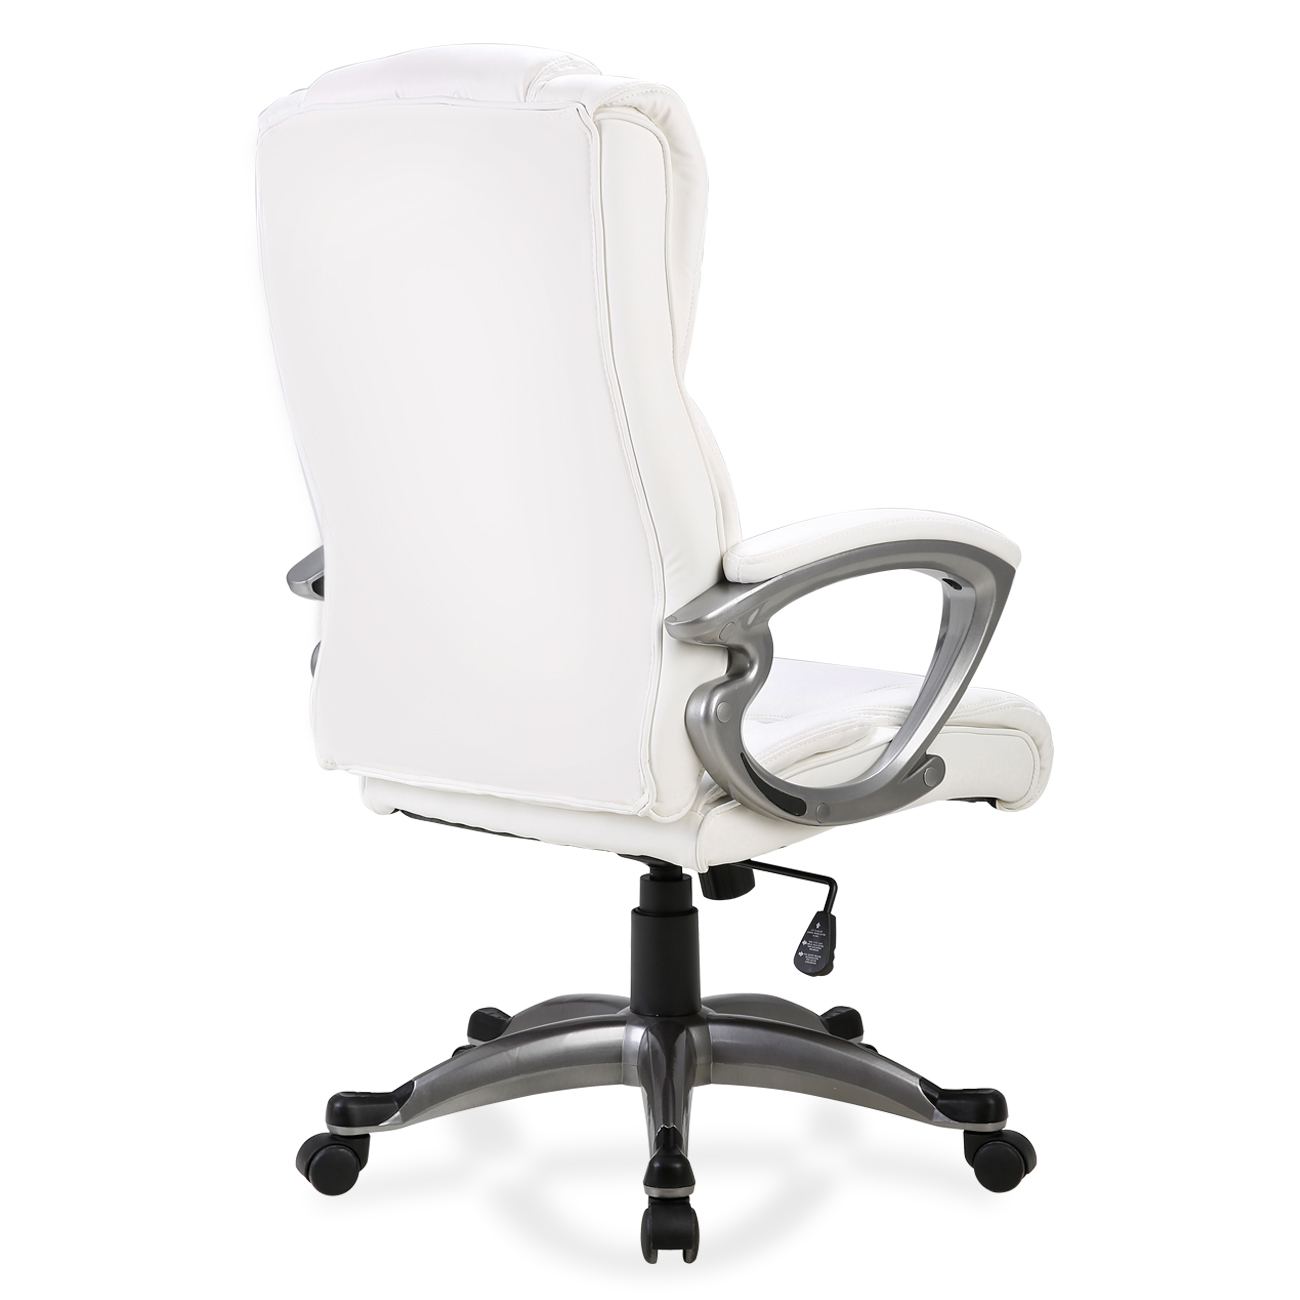 high quality office chairs ergonomic pier one leather chair executive back task computer